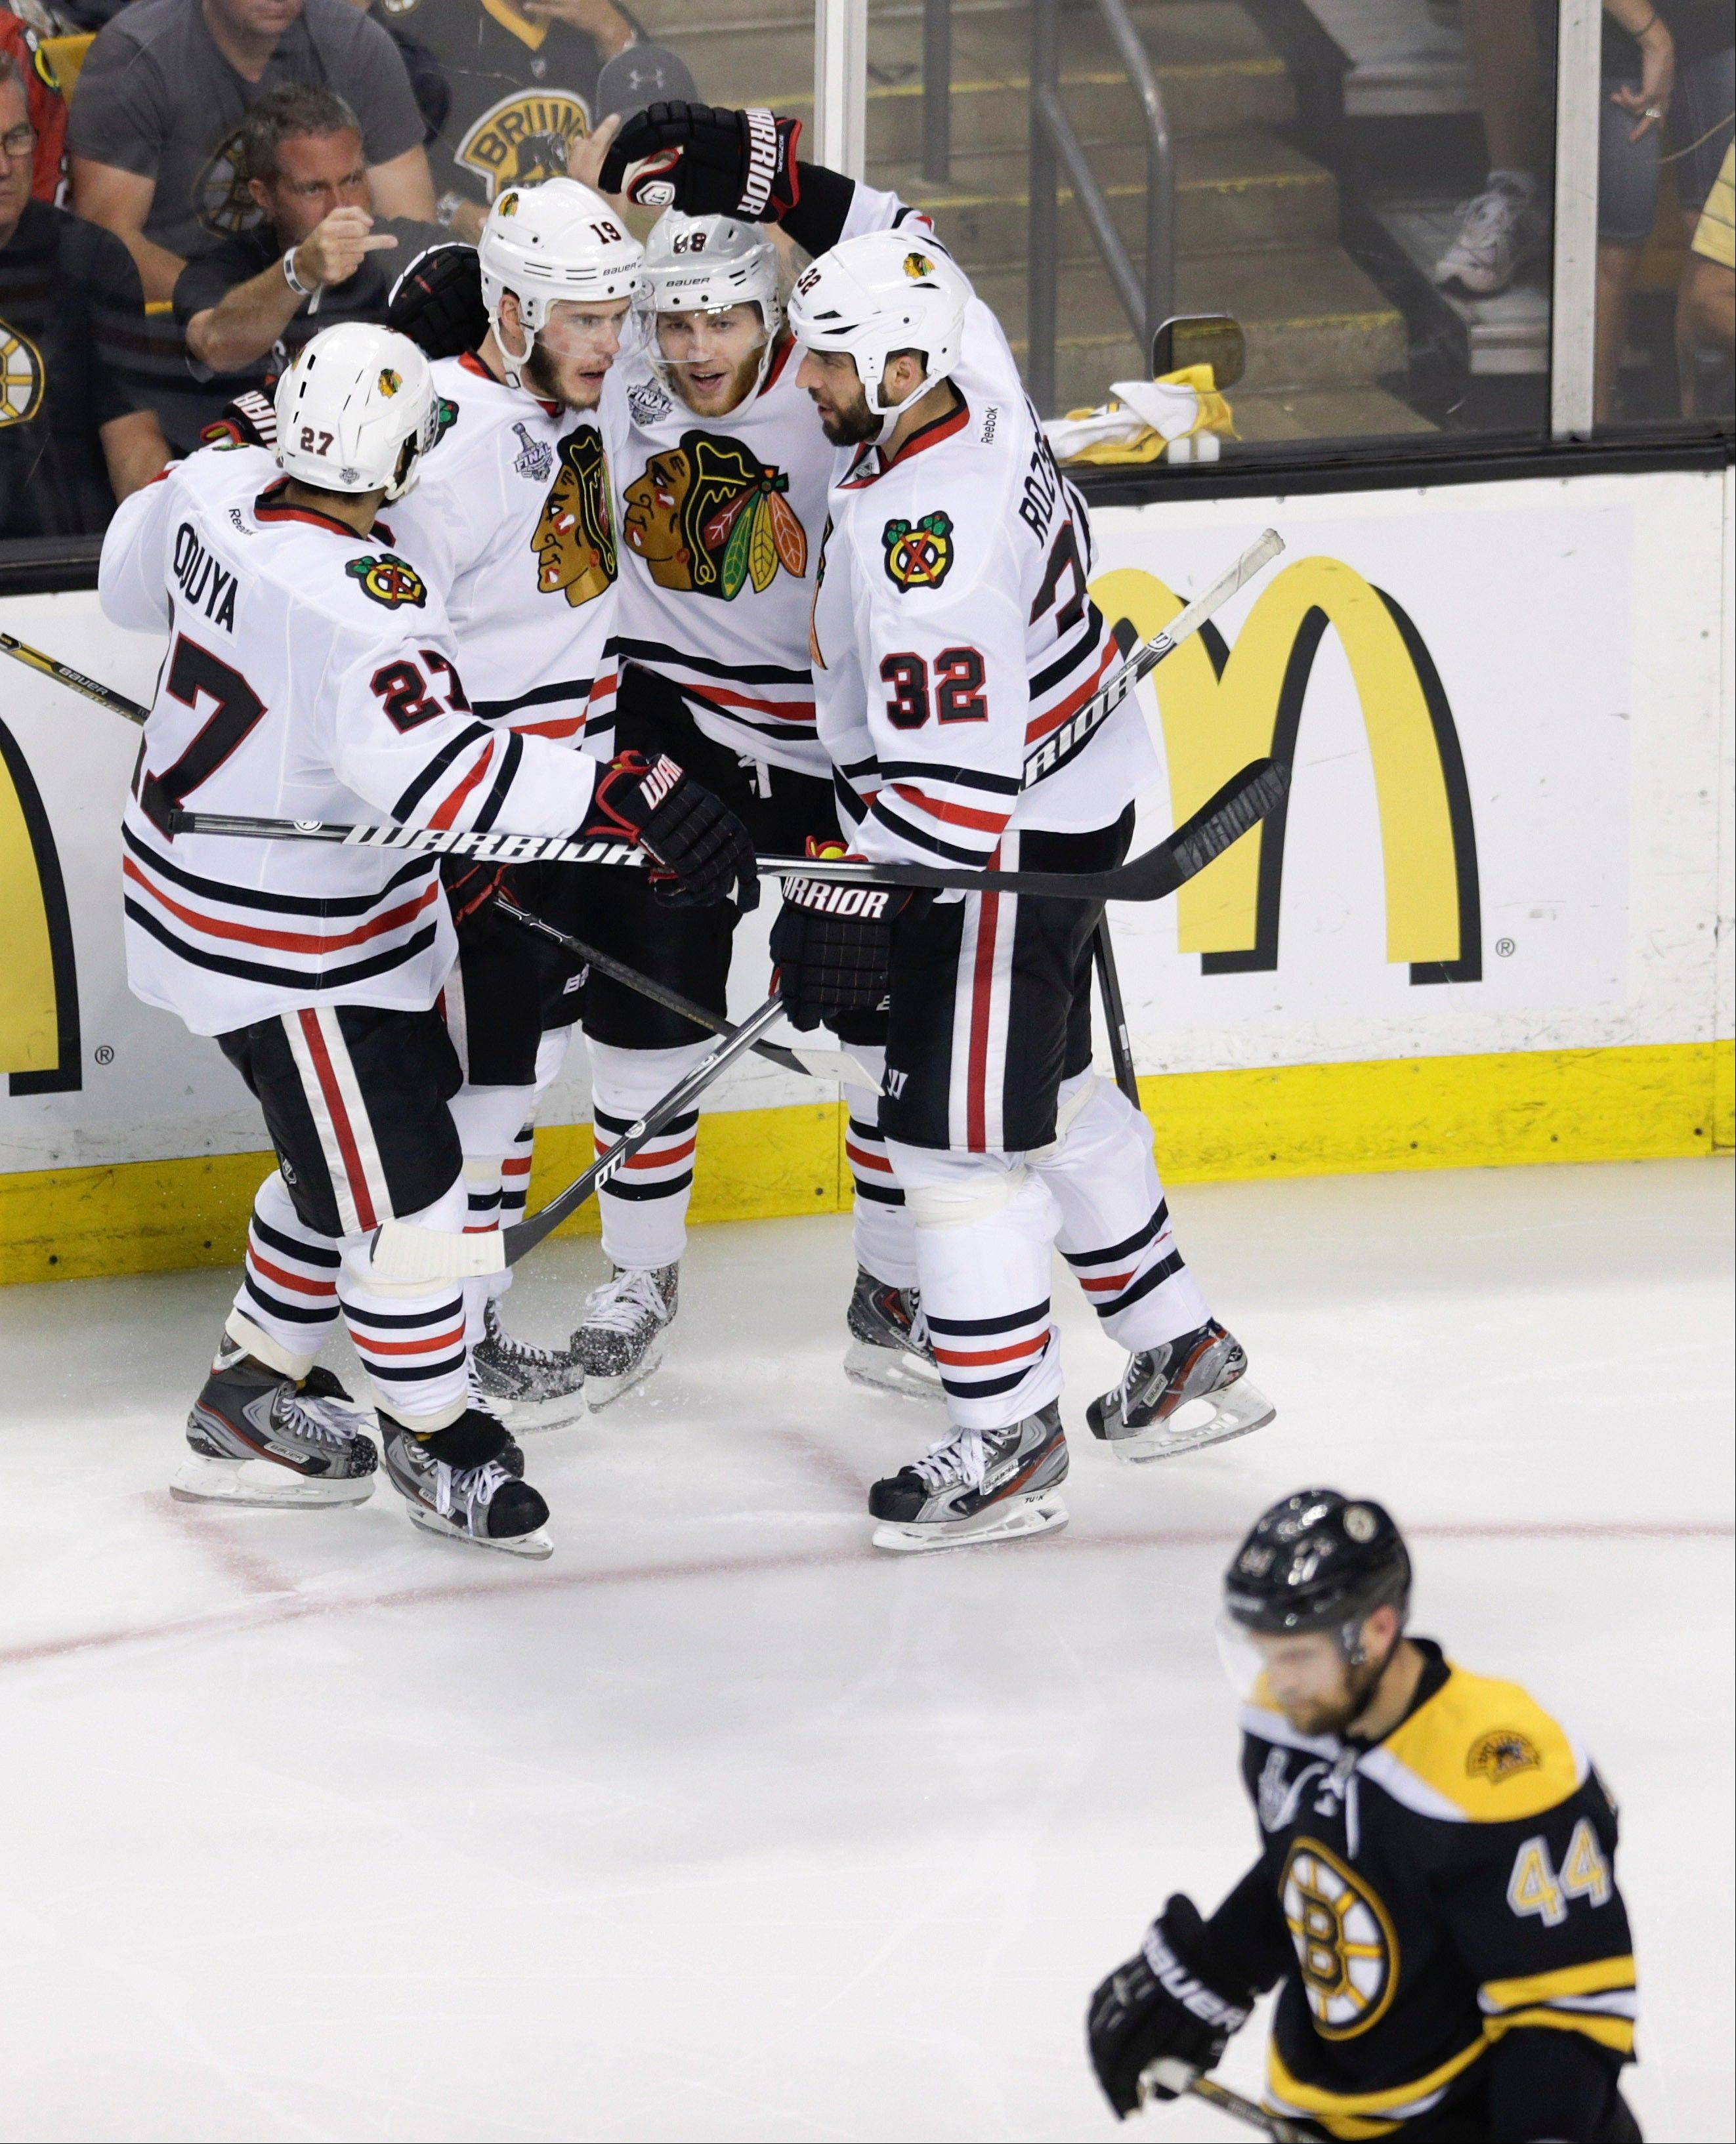 Blackhawks center Jonathan Toews, left, celebrates his goal against the Boston Bruins with right wing Patrick Kane, center, and defenseman Michal Rozsival (32). Two third-period goals in the final two minutes of the game gave the Hawks their second Stanley Cup title in four years.